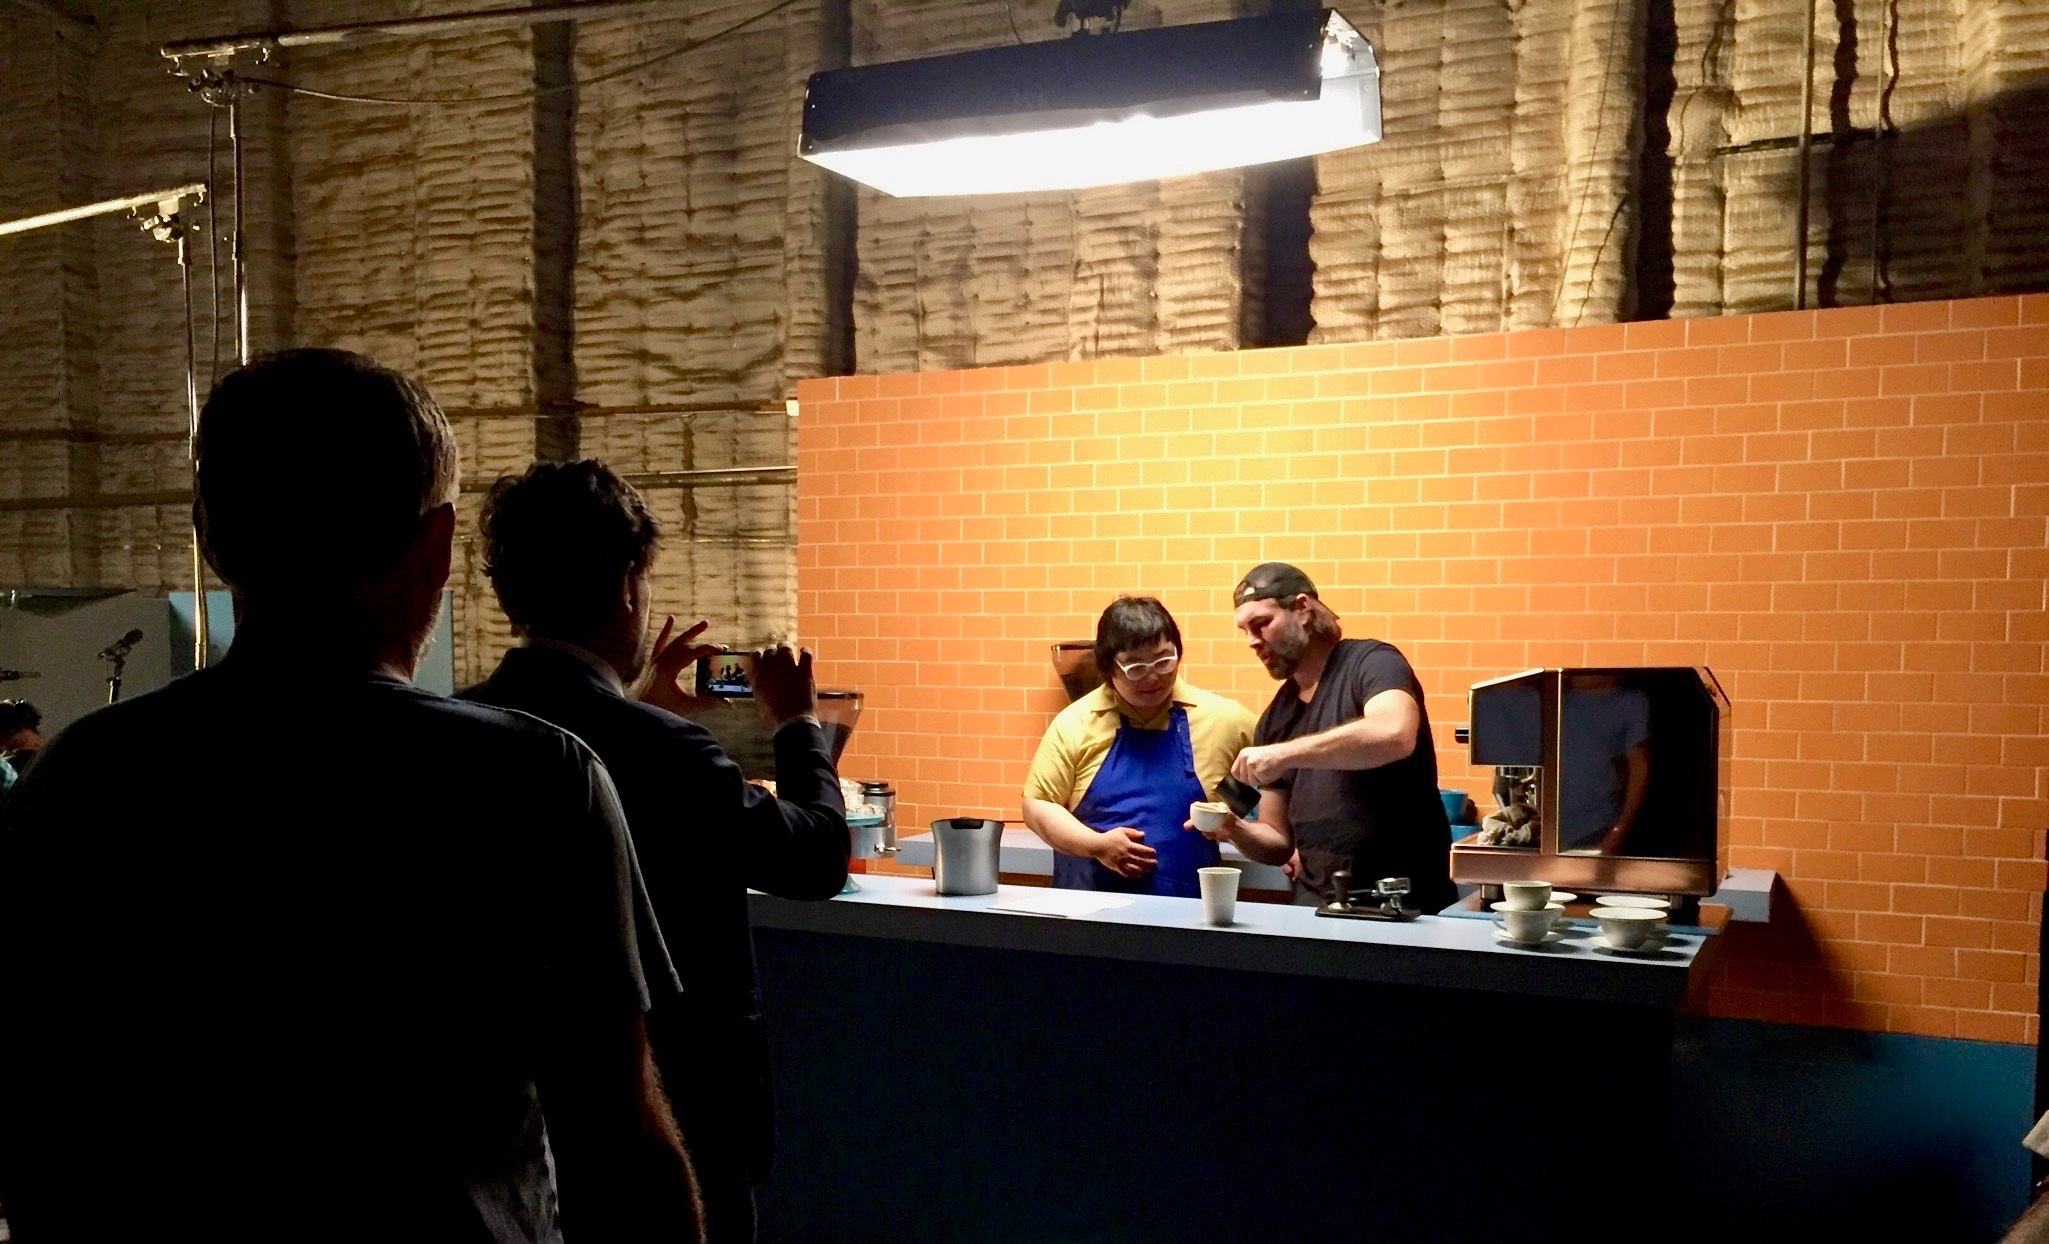 Founder, Matthew Evilsizor, barista training on the film set of a Roman Copella project in Los Angeles, CA.